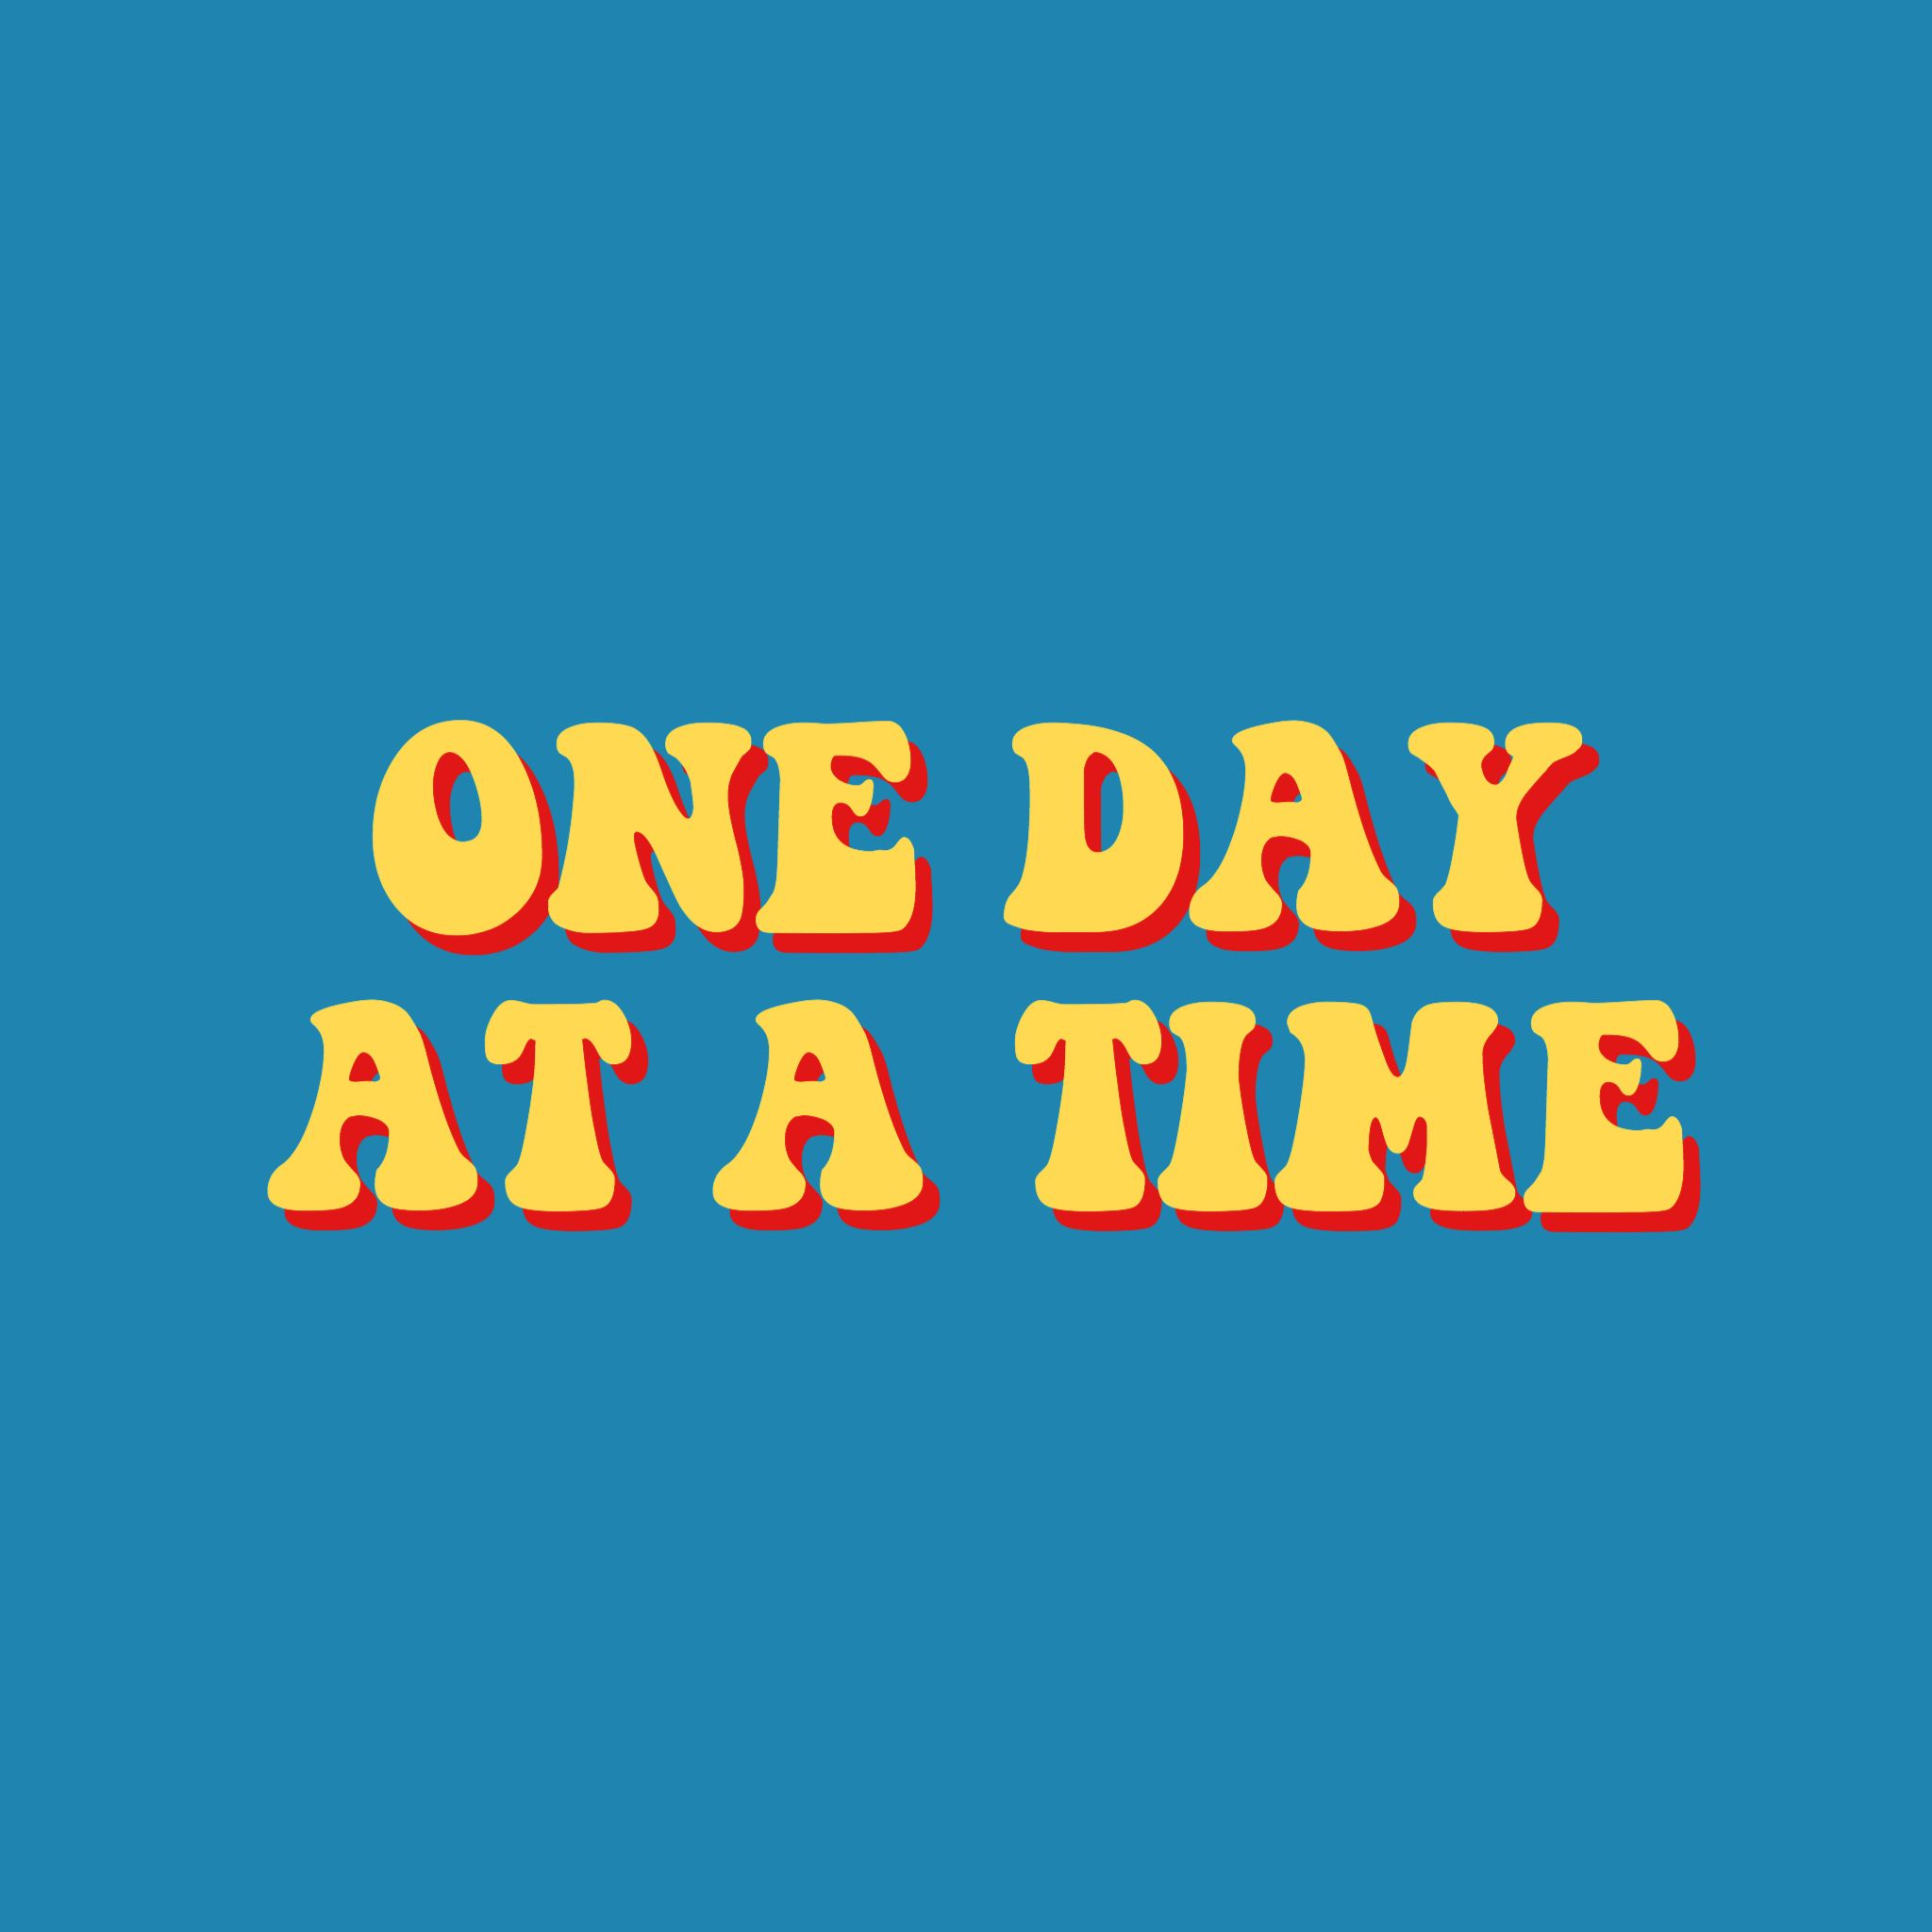 One Day At A Time Quote Inspirational Retro Vintage Aesthetic Blue